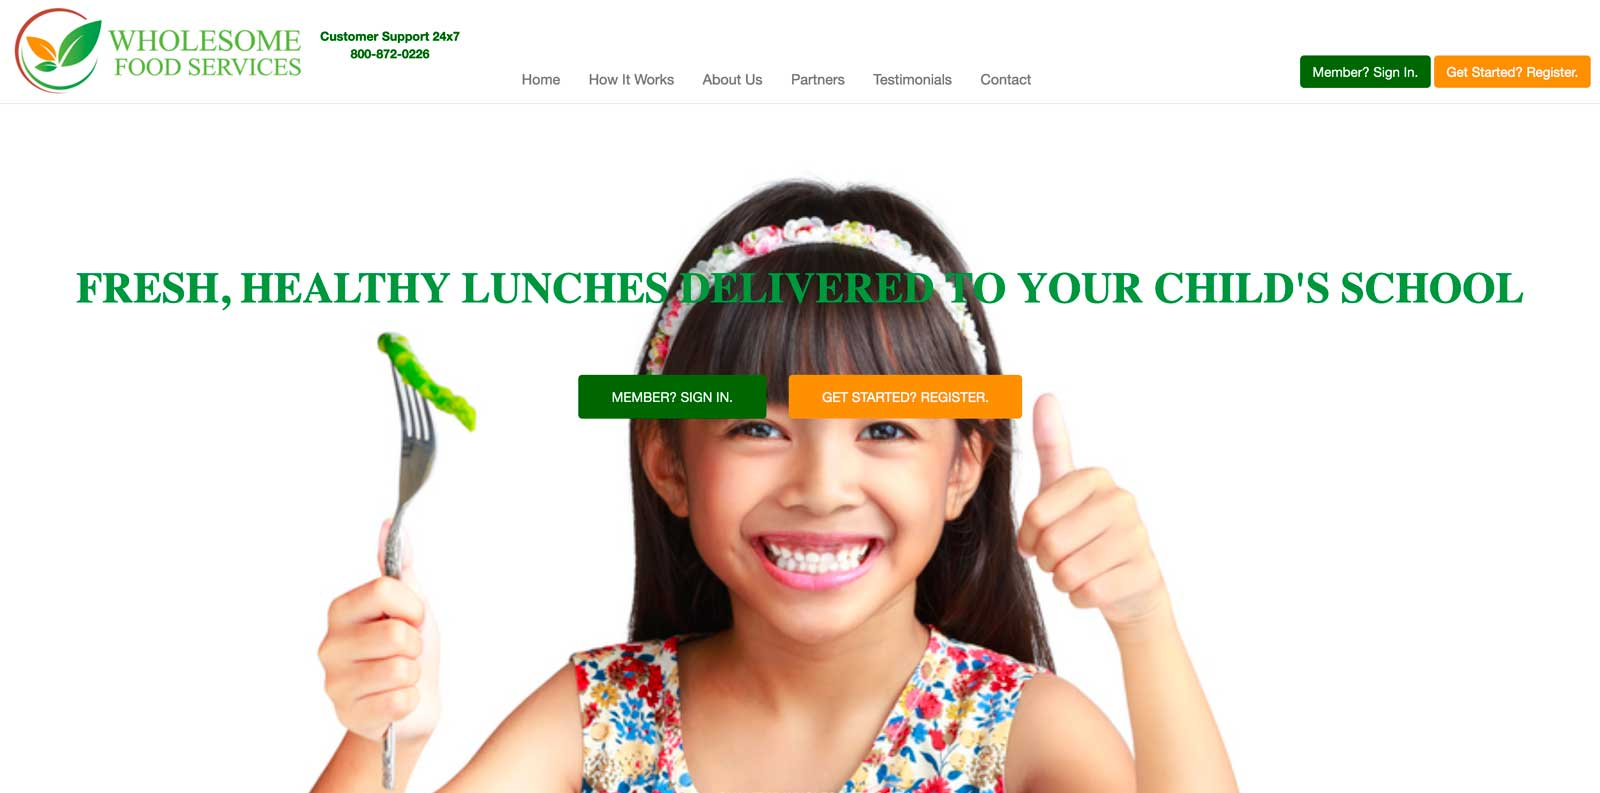 Image of website for Wholesome Food Services